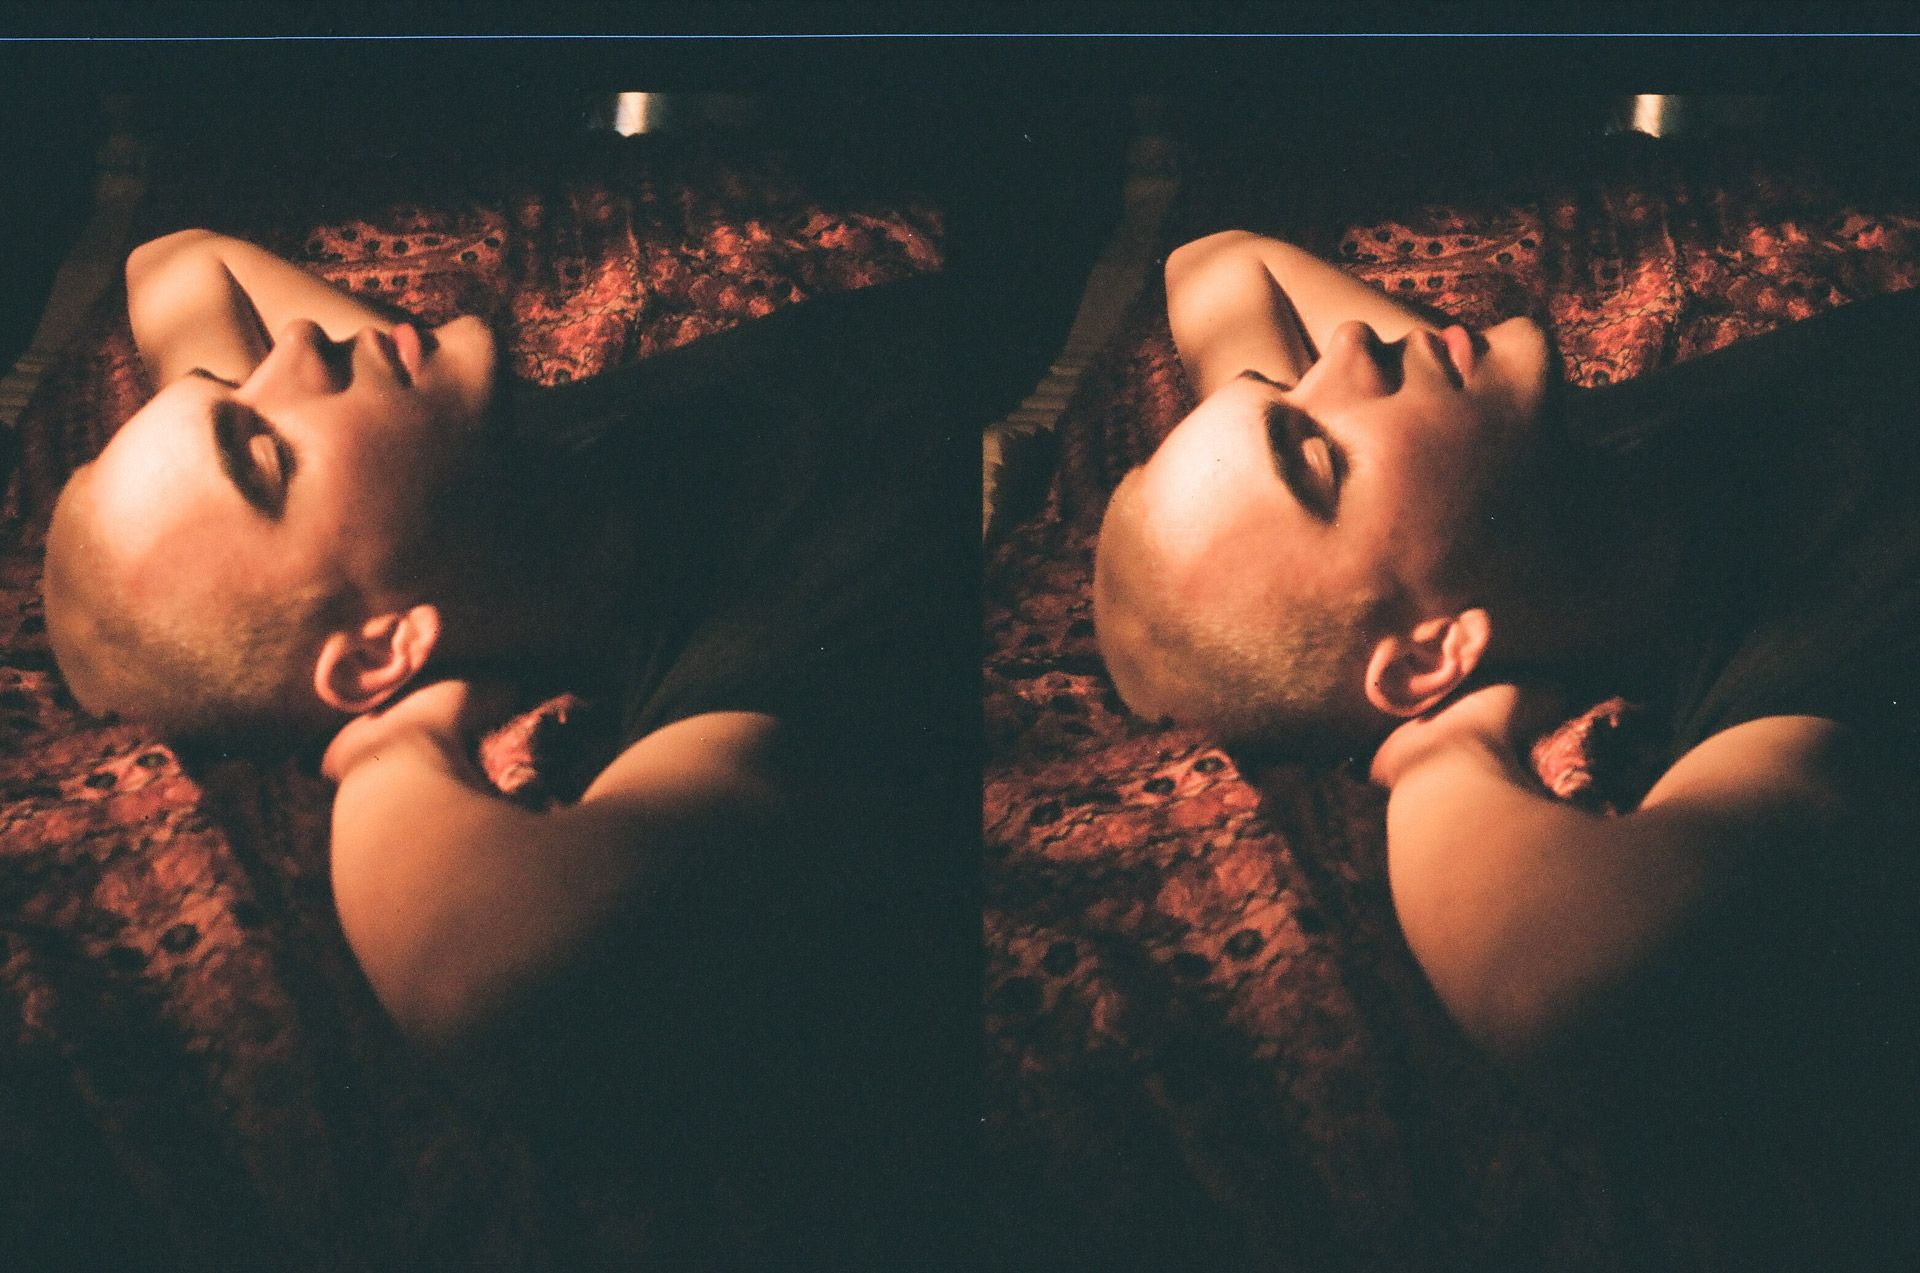 singer Yuki Dreams Again laying on fabric with hands behind his head in his promotional video filmed by Les Gamins